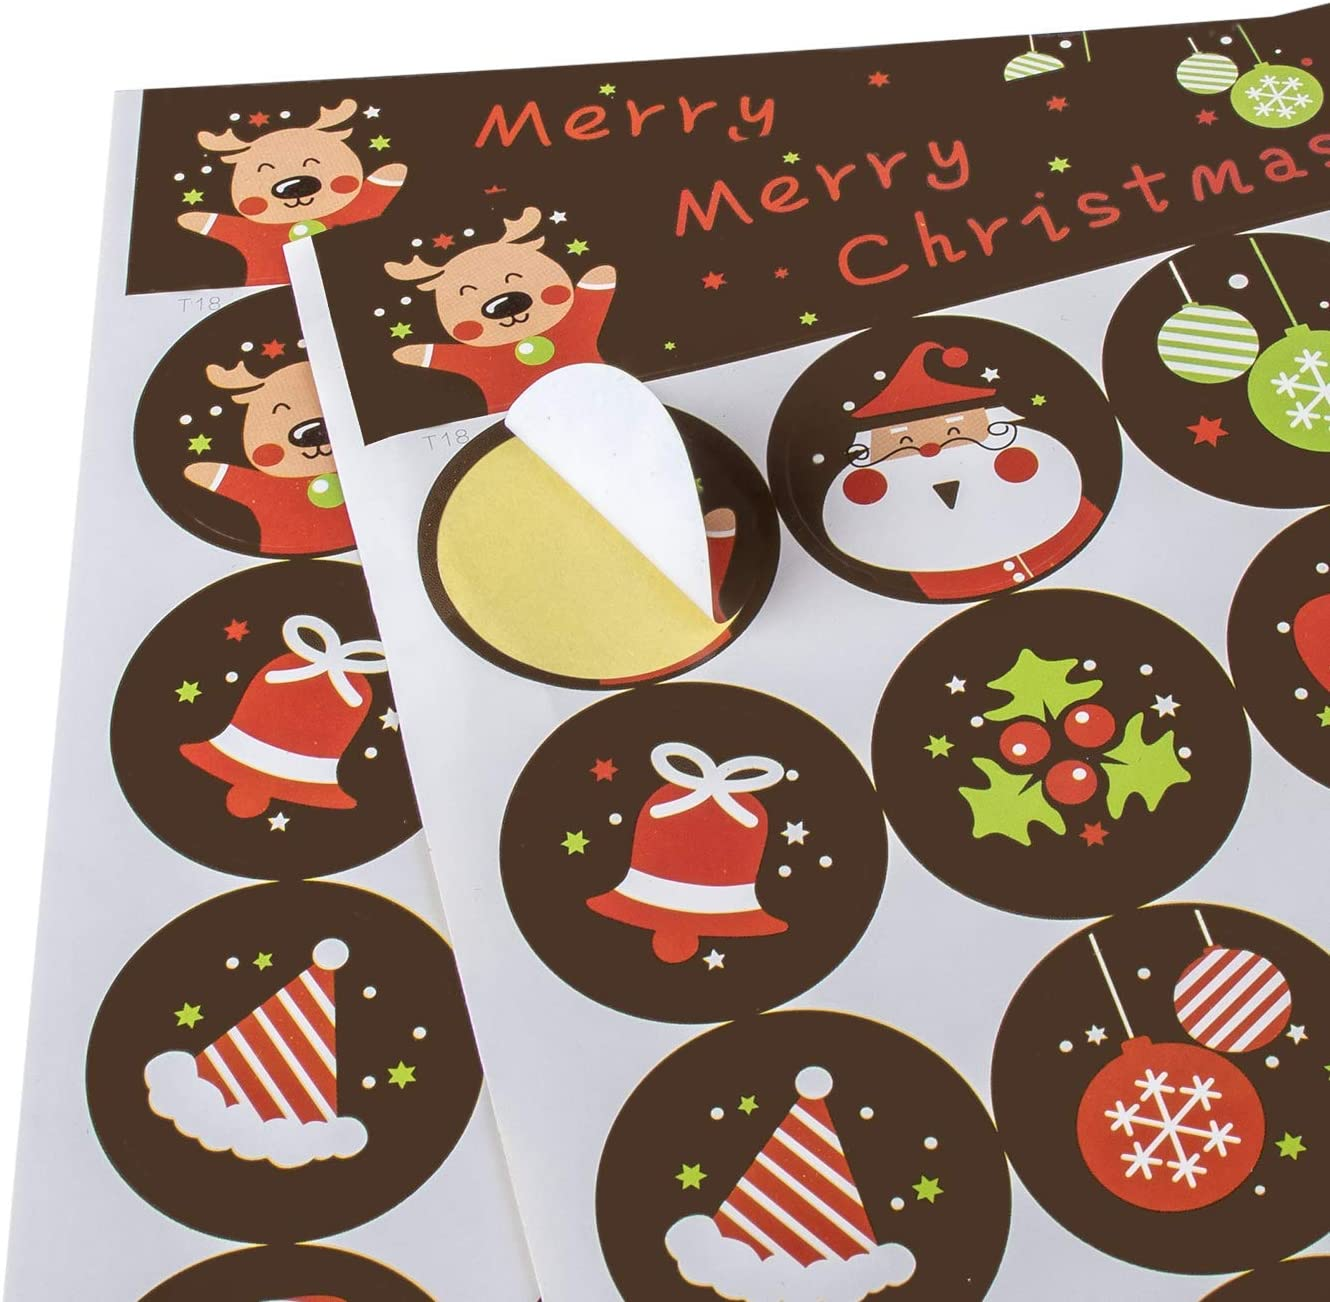 SoFire 408 Pieces Christmas Holiday Stickers Self Adhesive Christmas Scrapbook Stickers